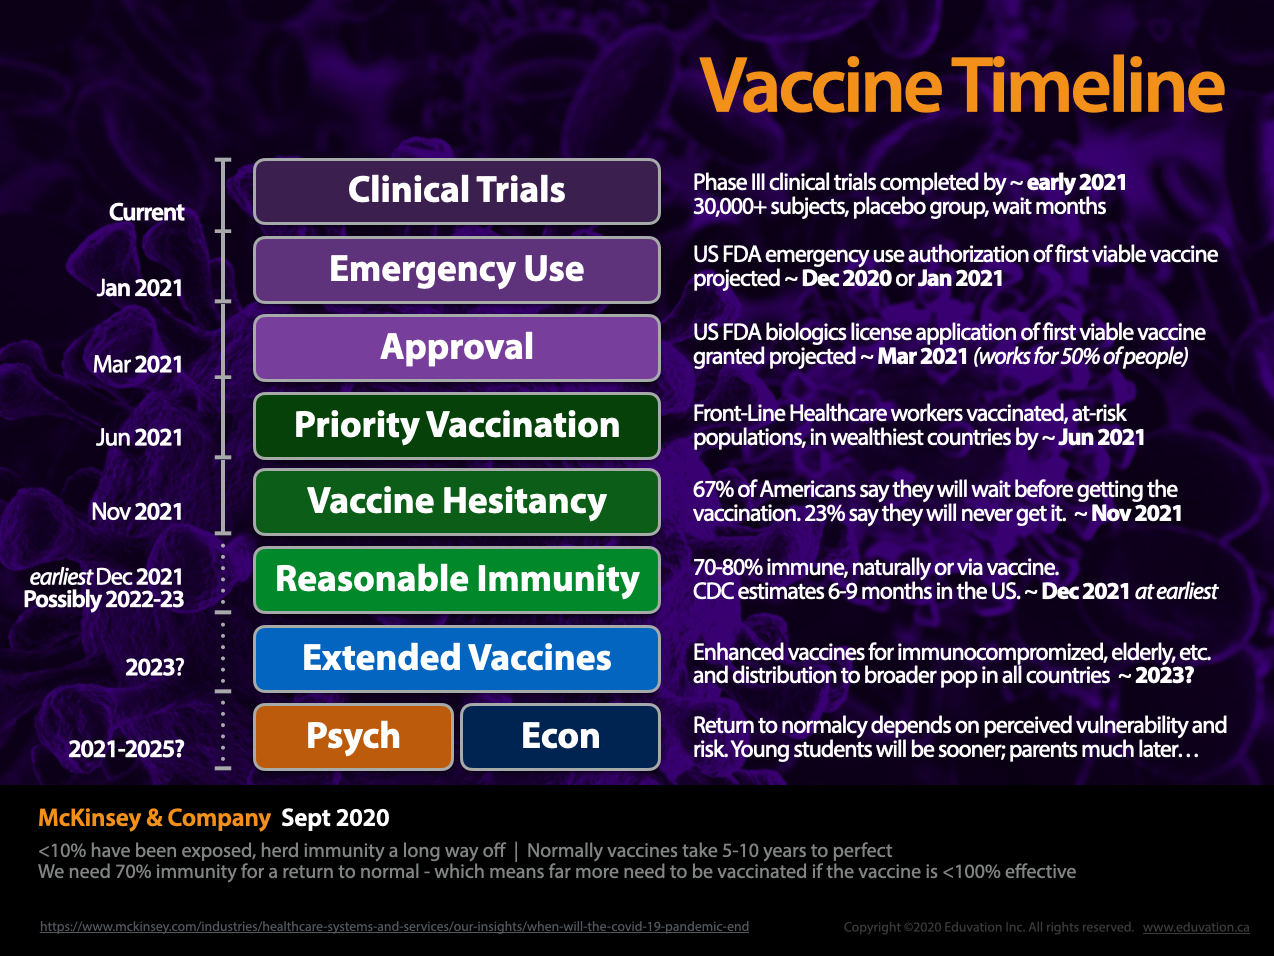 Developing and deploying a vaccine will take years.